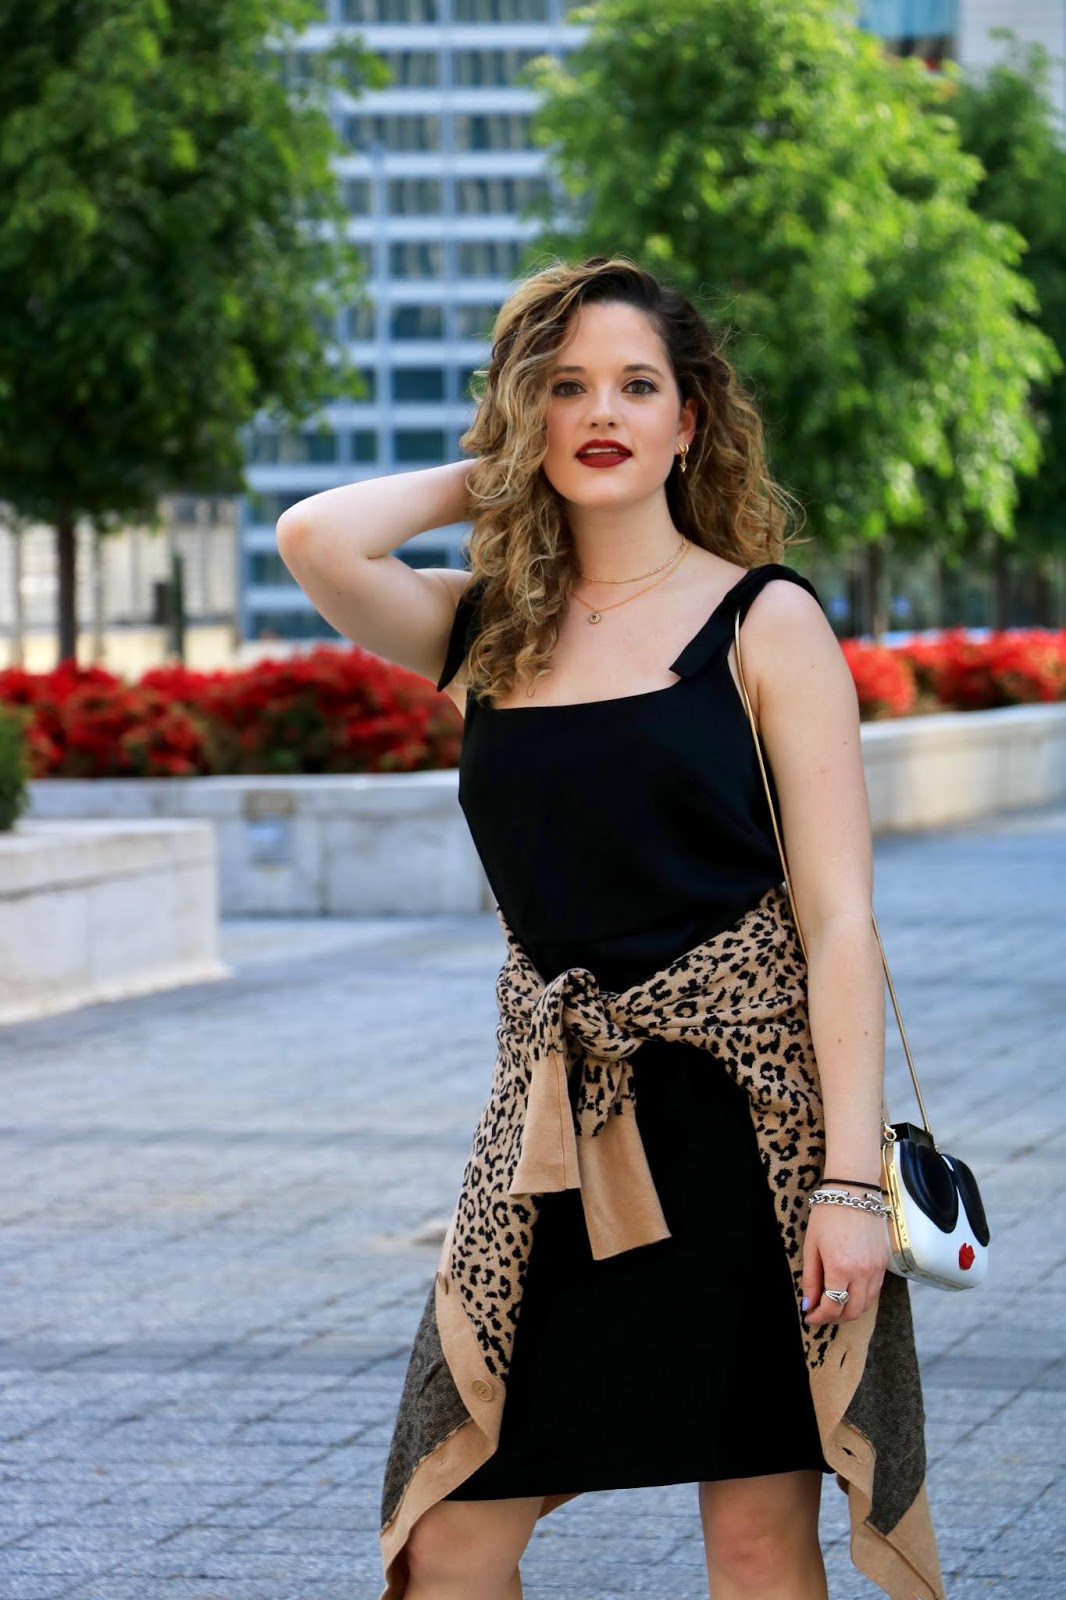 Nyc fashion blogger Kathleen Harper's black dress outfit idea for Spring.